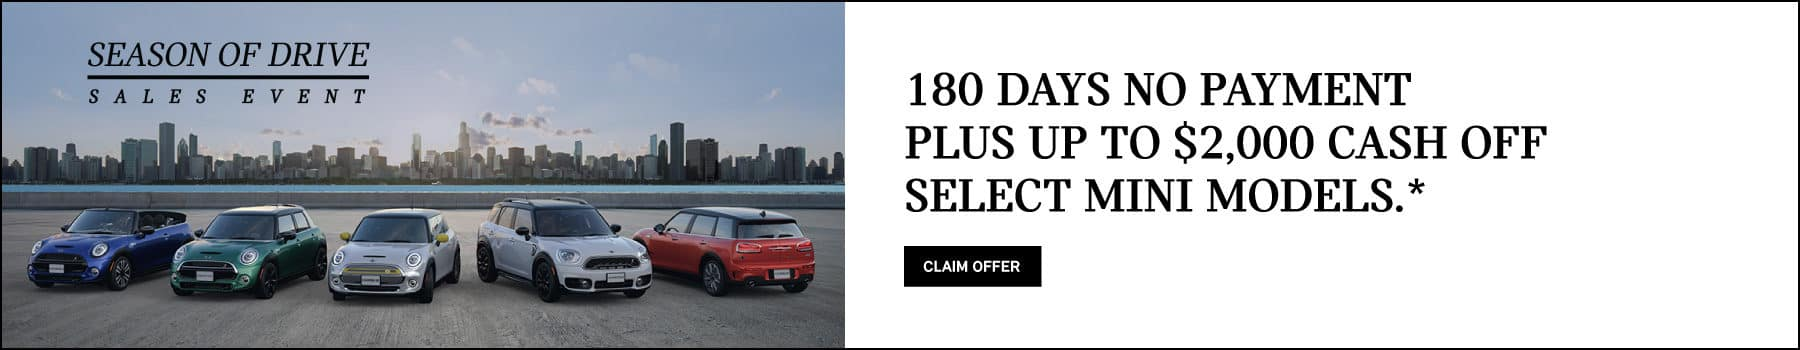 180 days no payment plus up to $2000 off select MINI models